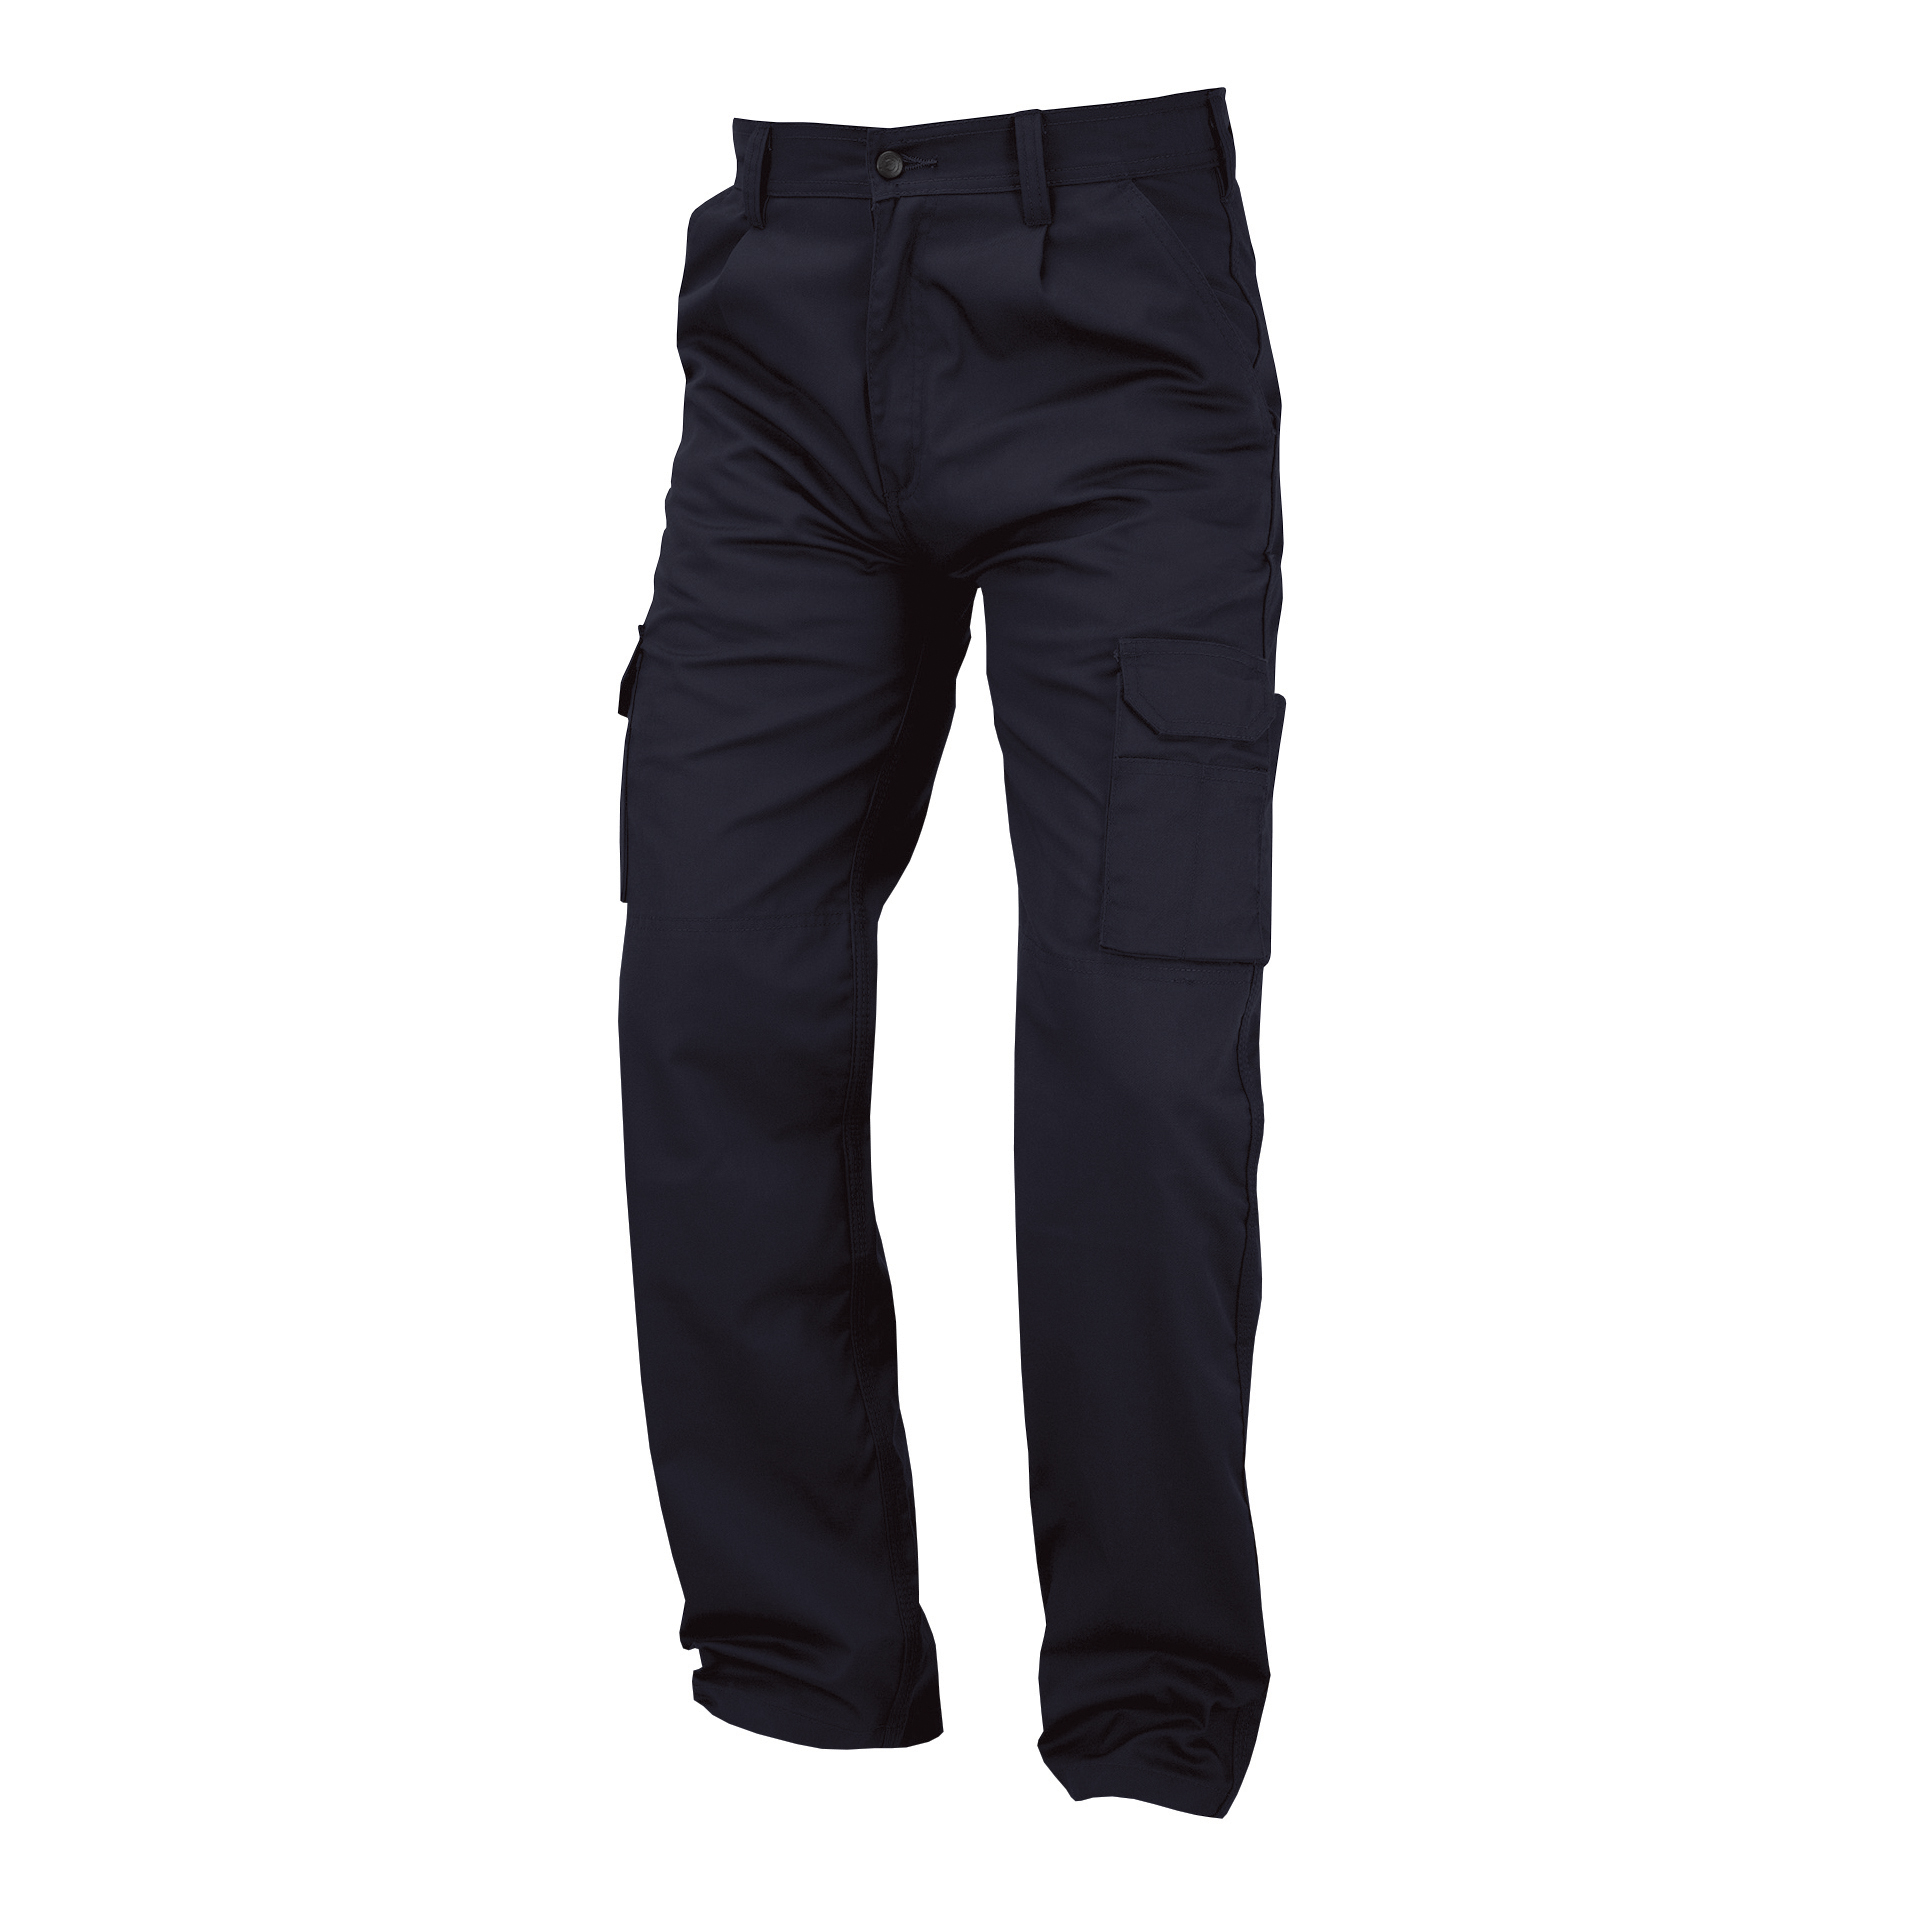 Combat / Cargo Combat Trouser Multi-functional Waist 44in Leg 29in Navy Ref PCTHWN44S *Approx 3 Day Leadtime*